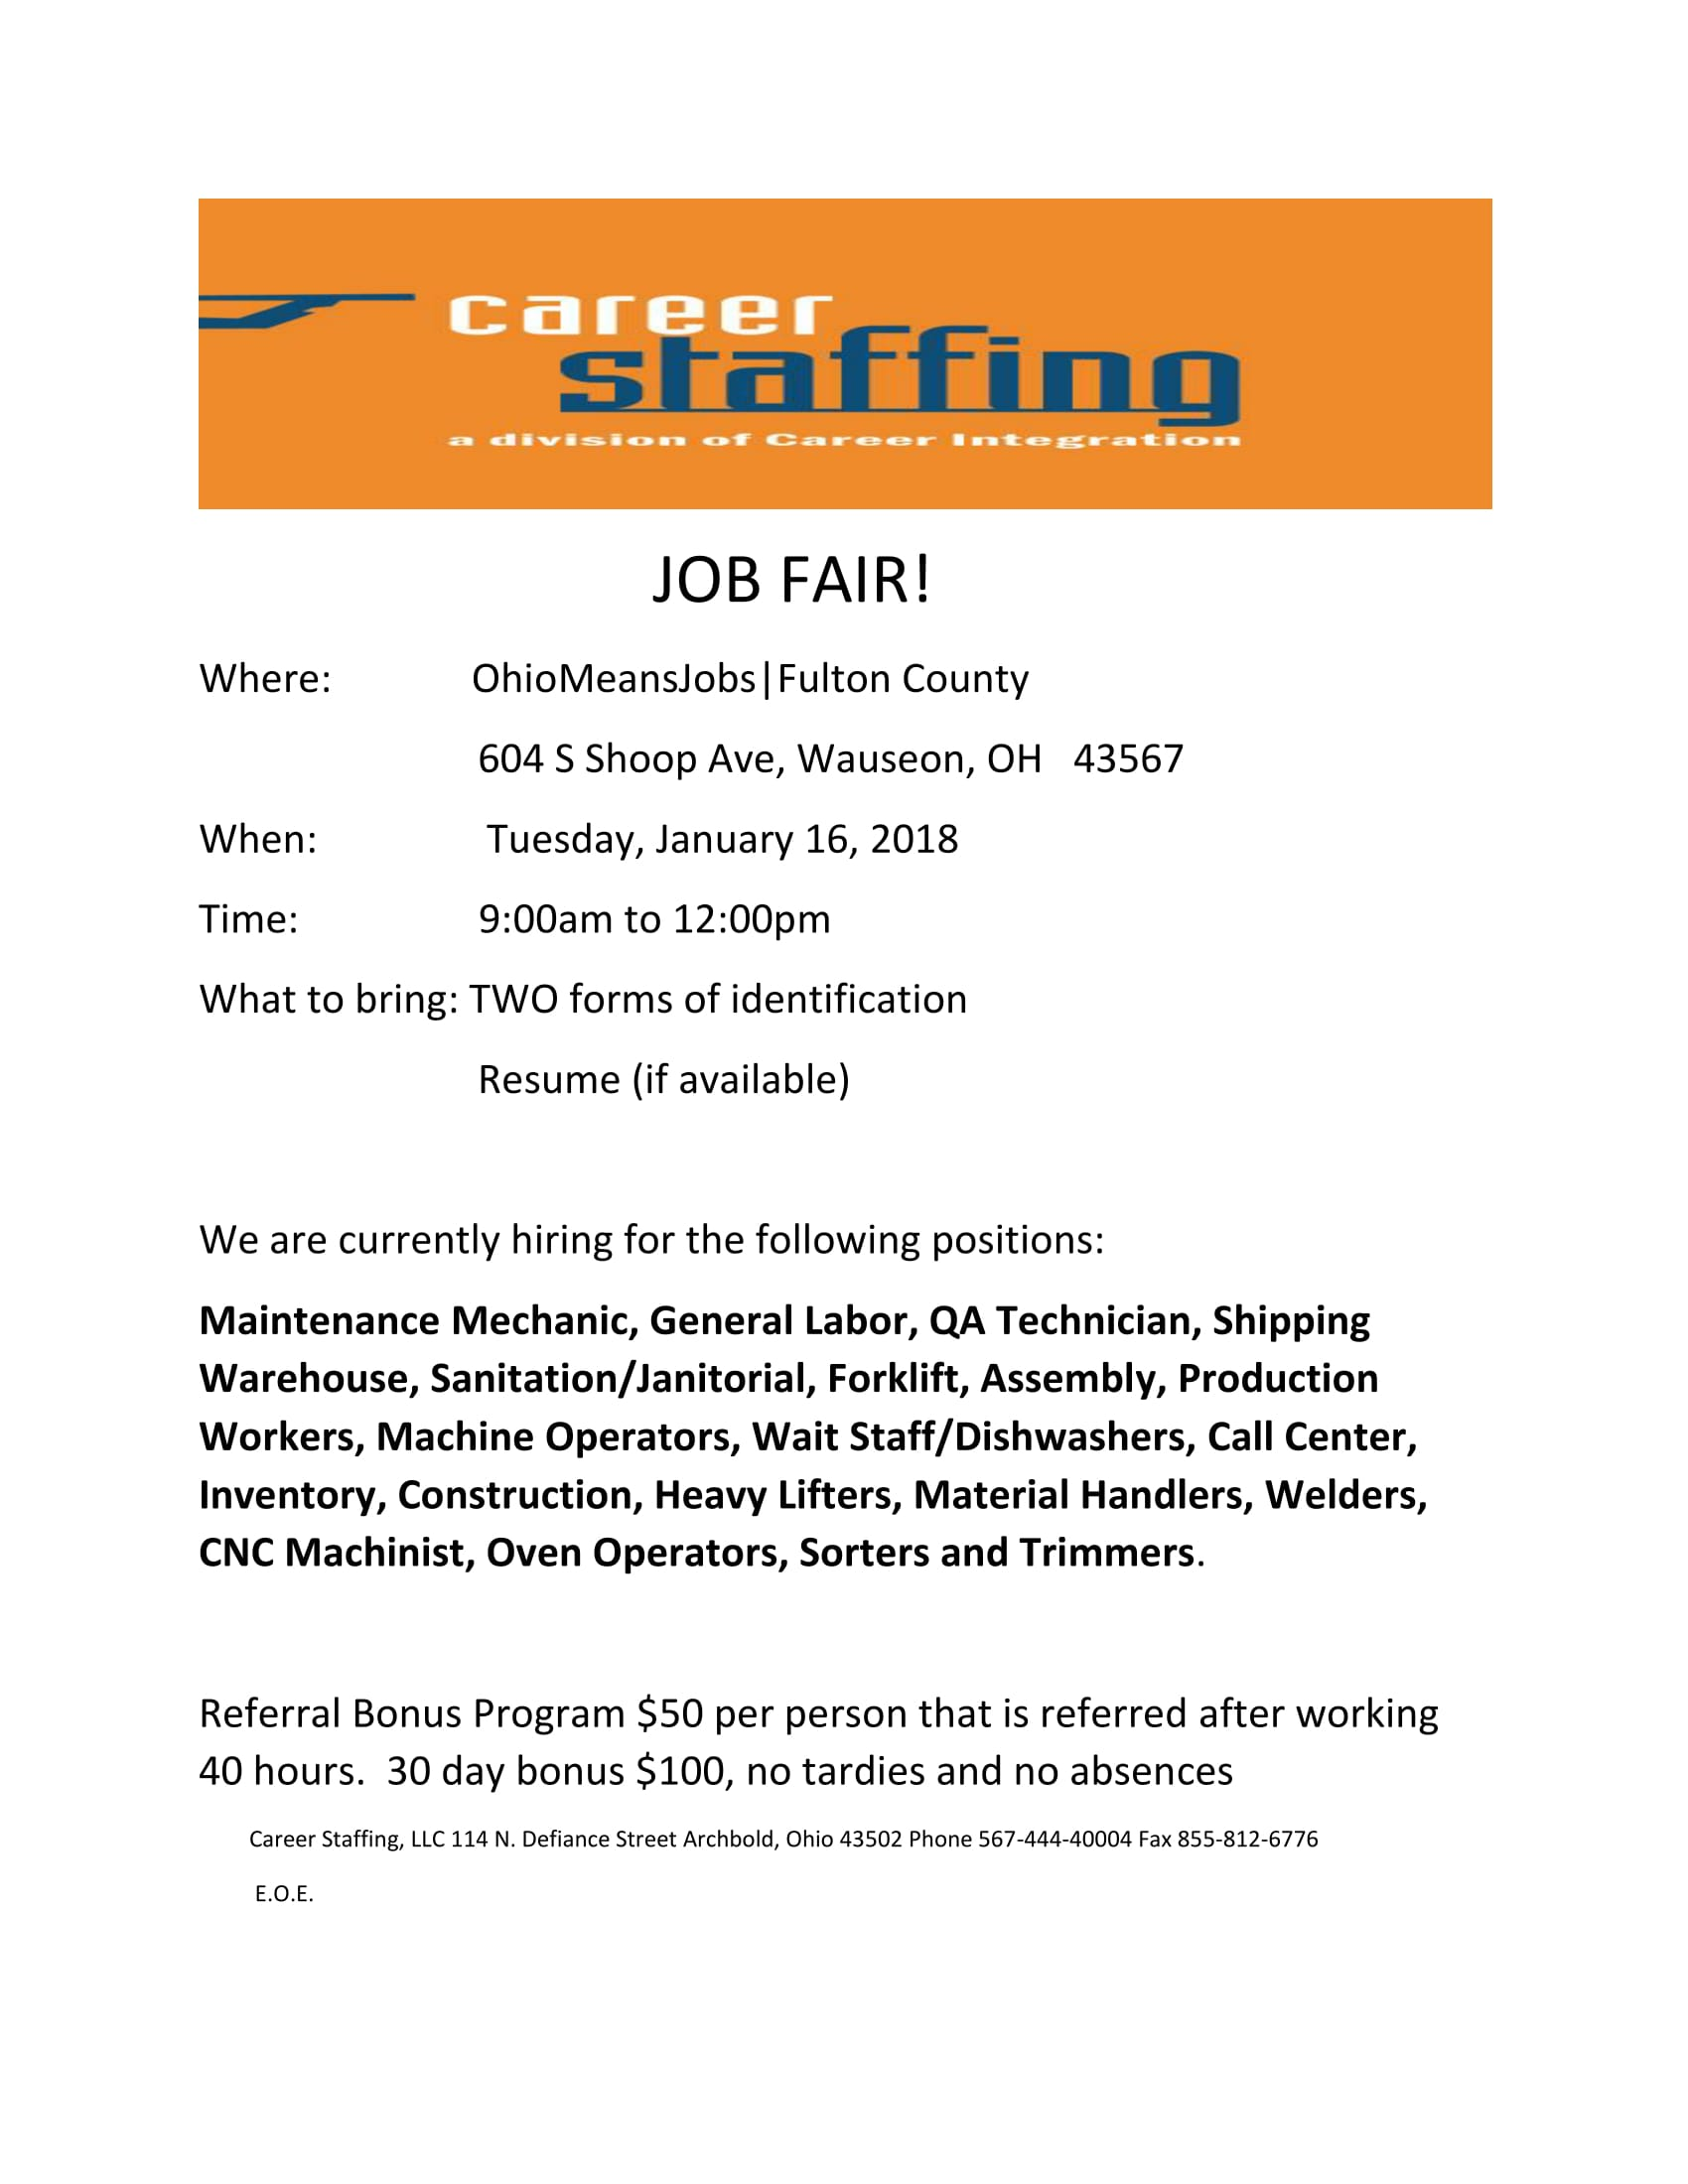 Career Staffing Job Fair